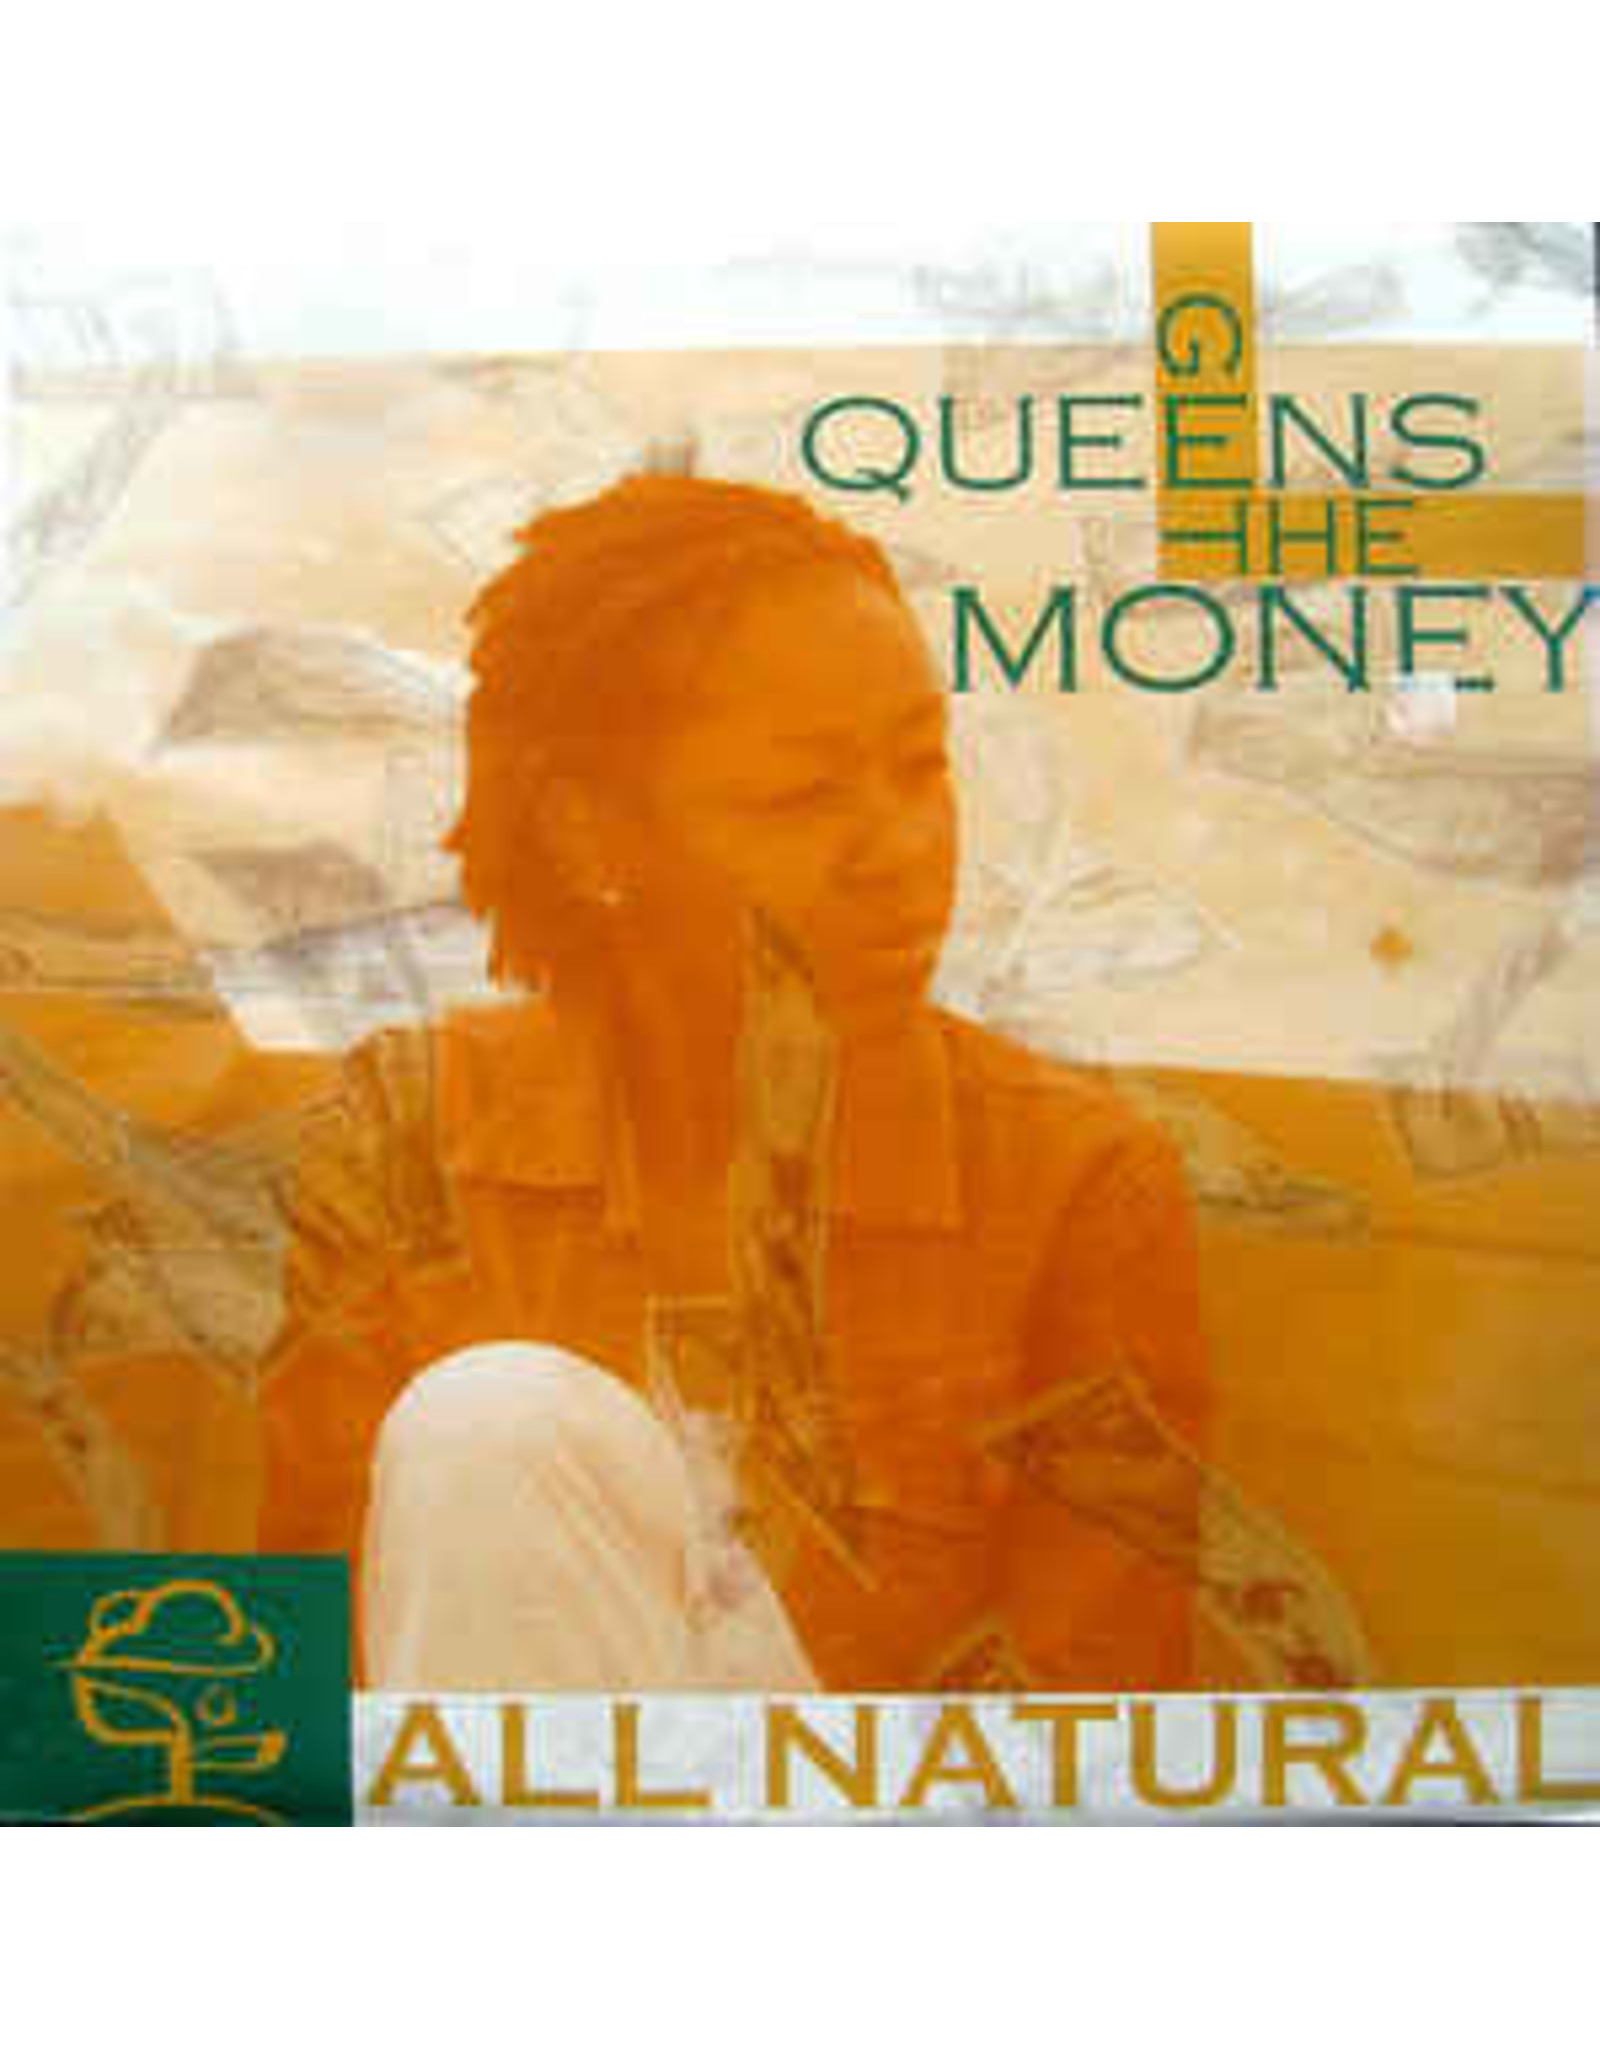 All Natural/Queens Get The Money